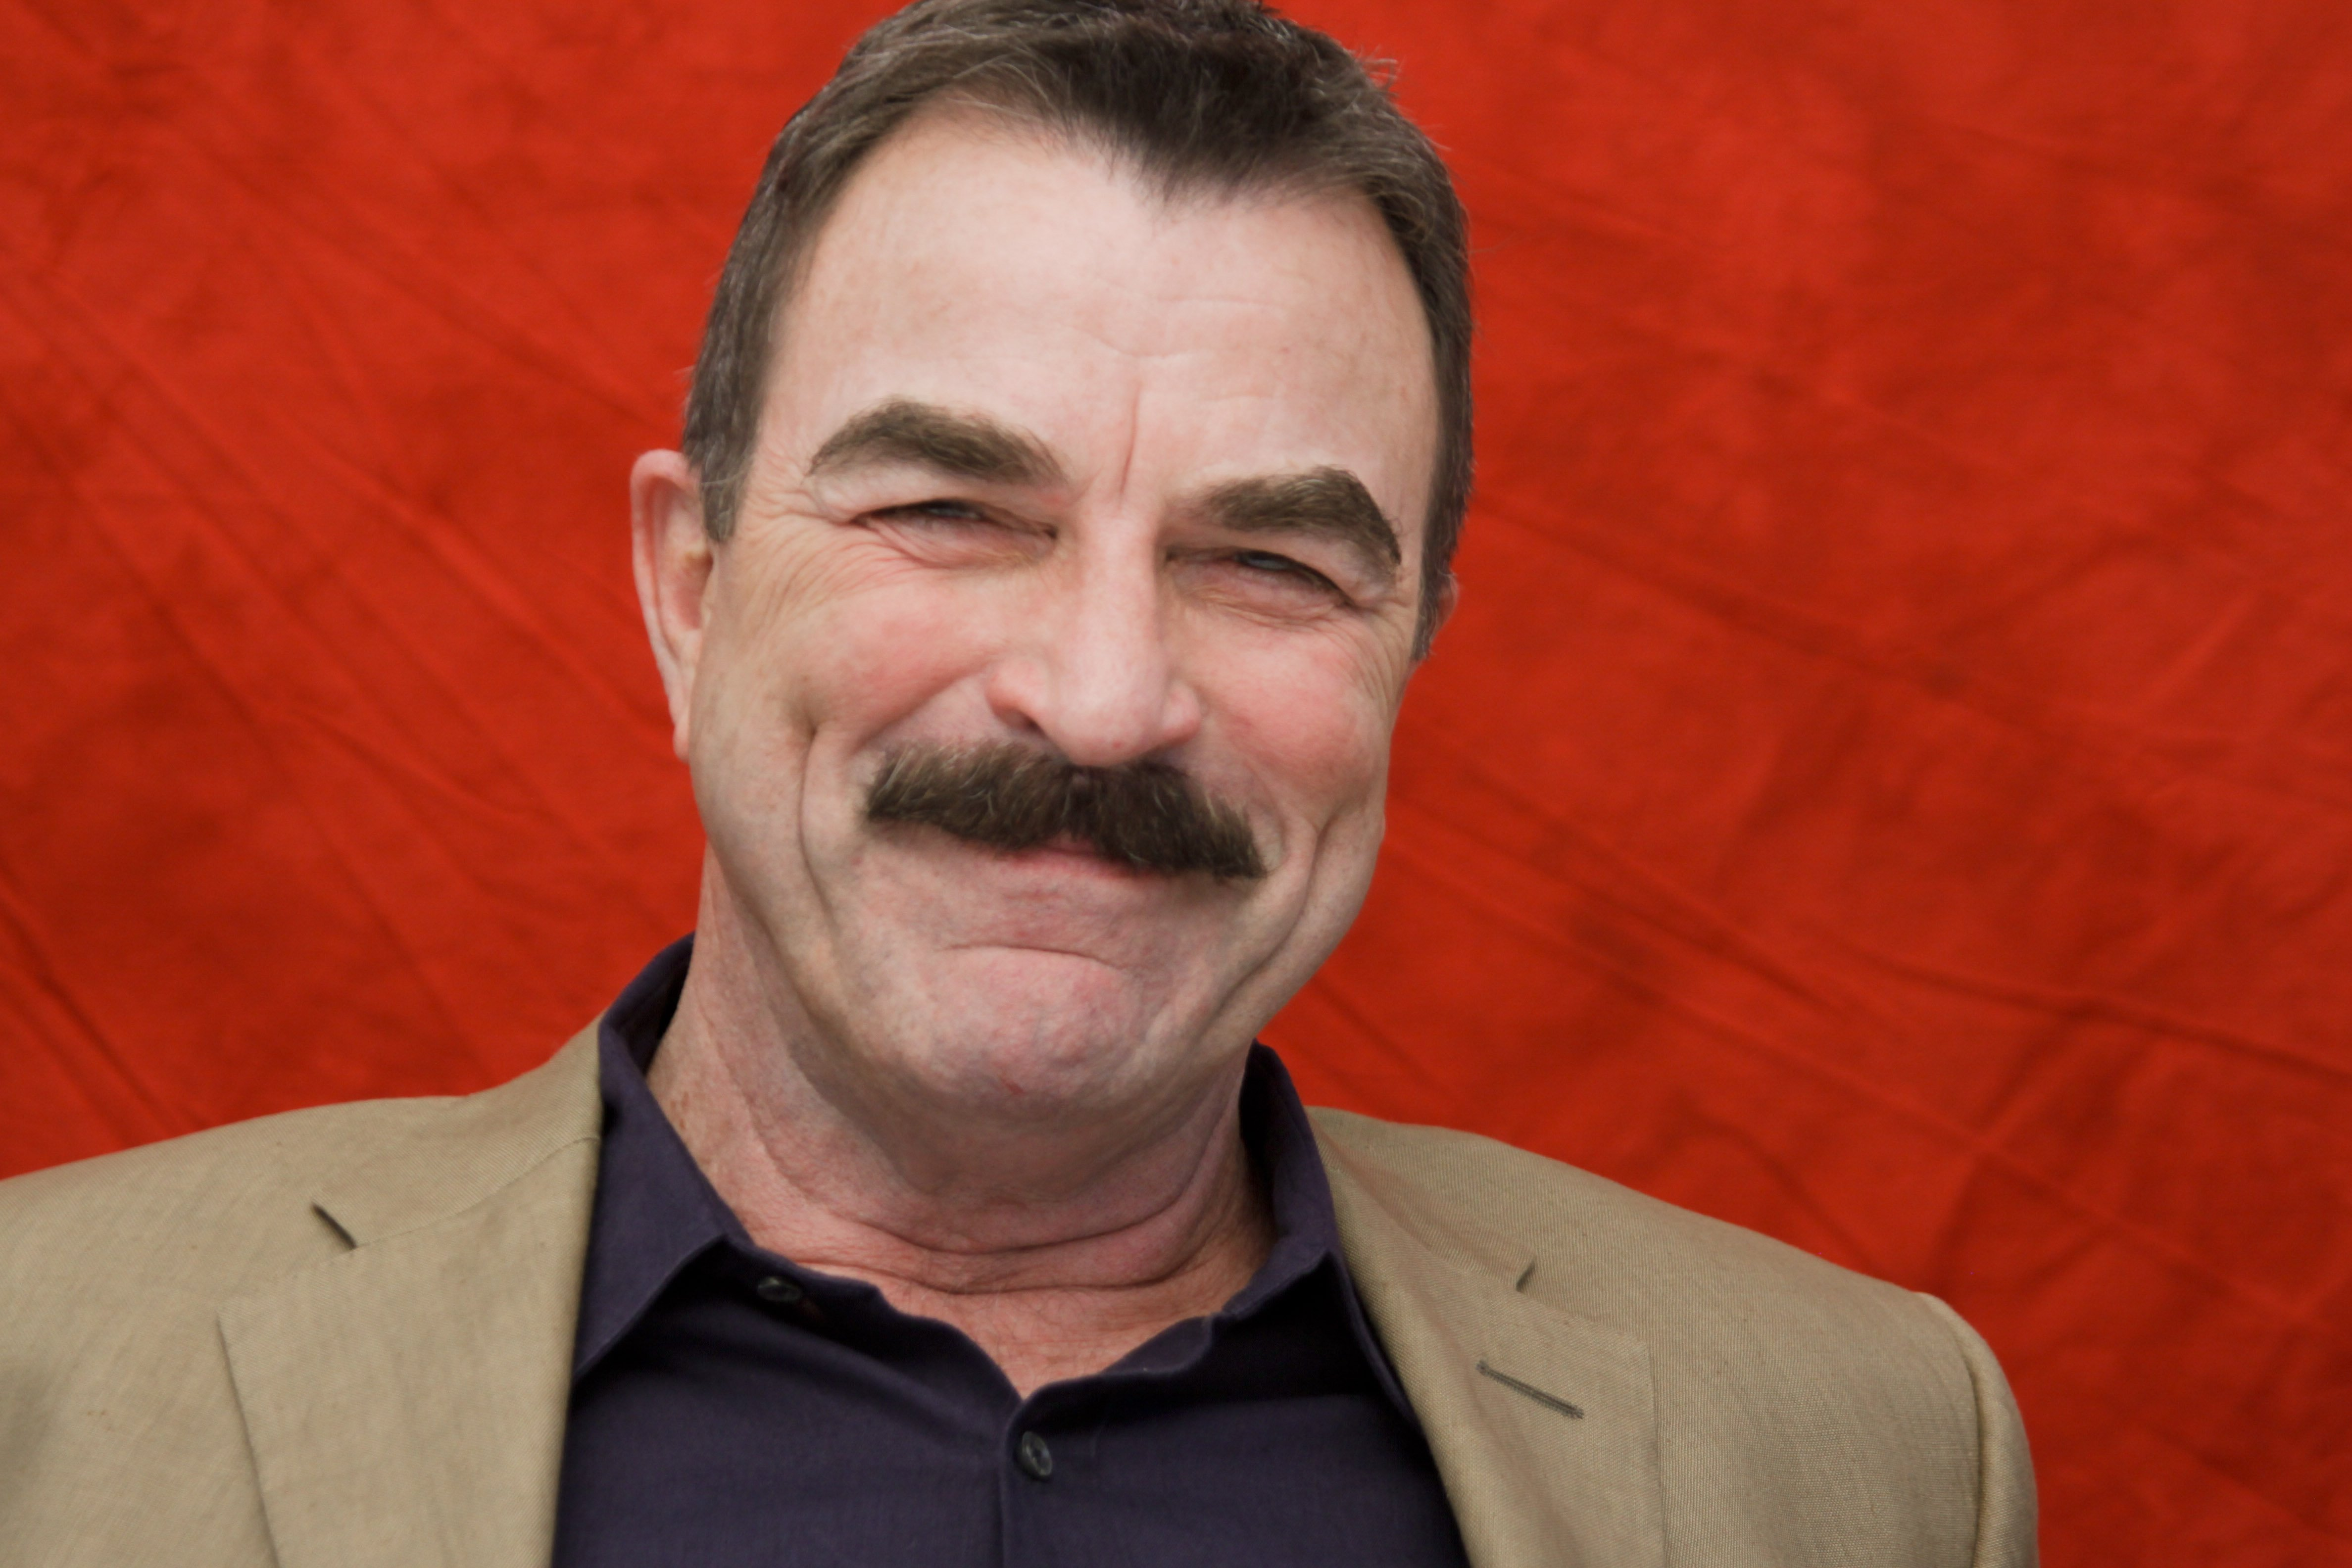 Tom Selleck poses for a photo during a portrait session in West Hollywood, California on August 16, 2010. | Photo: GetttyImages